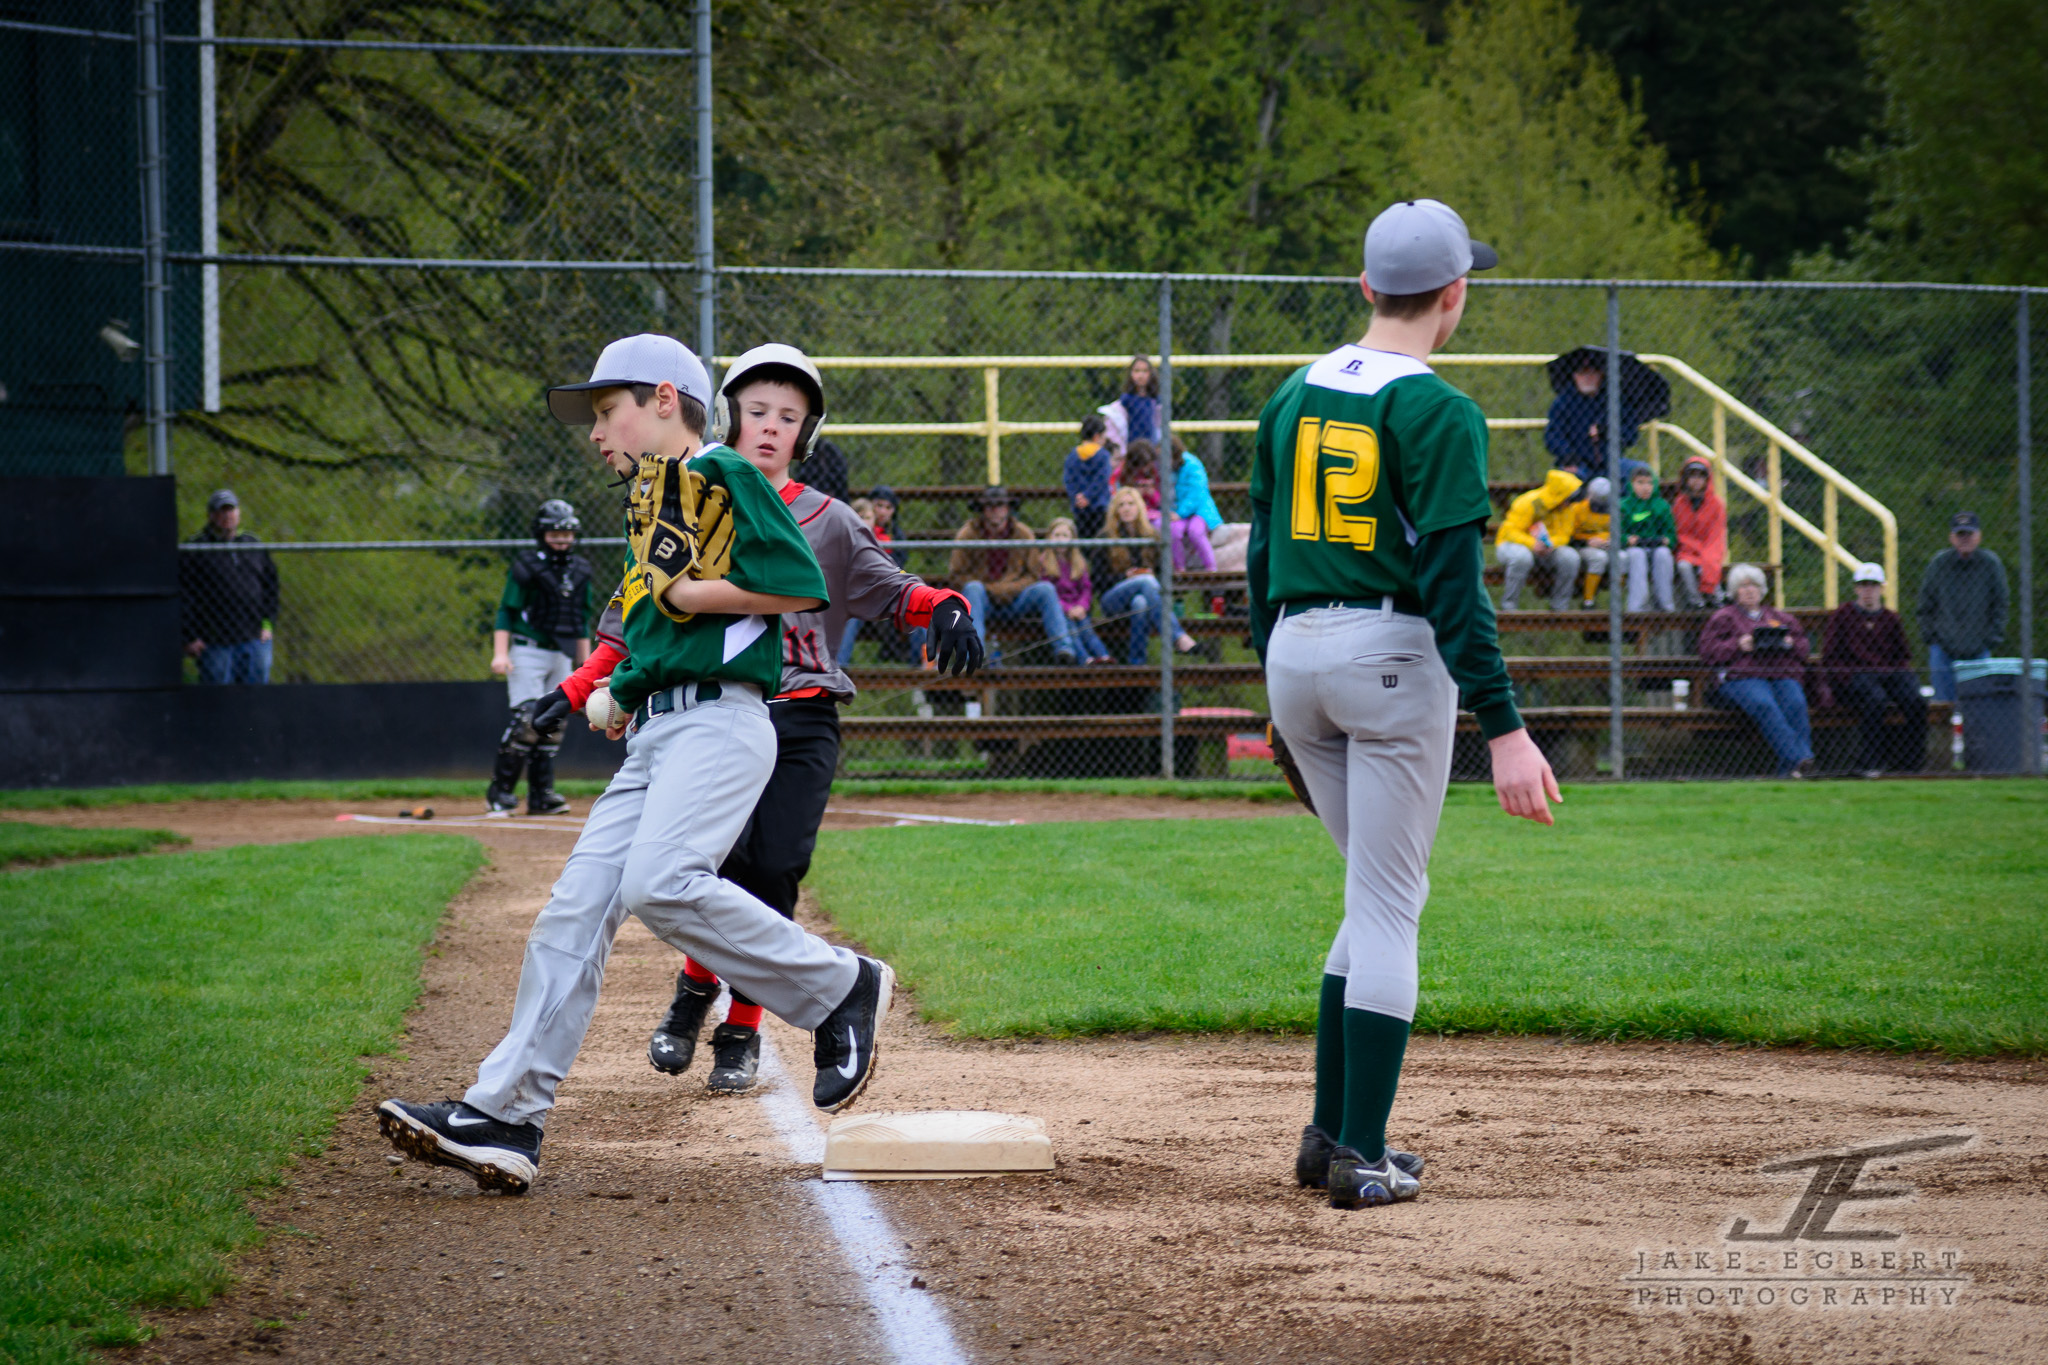 FB - 2014-04-05 - GreenSox - 19330.jpg